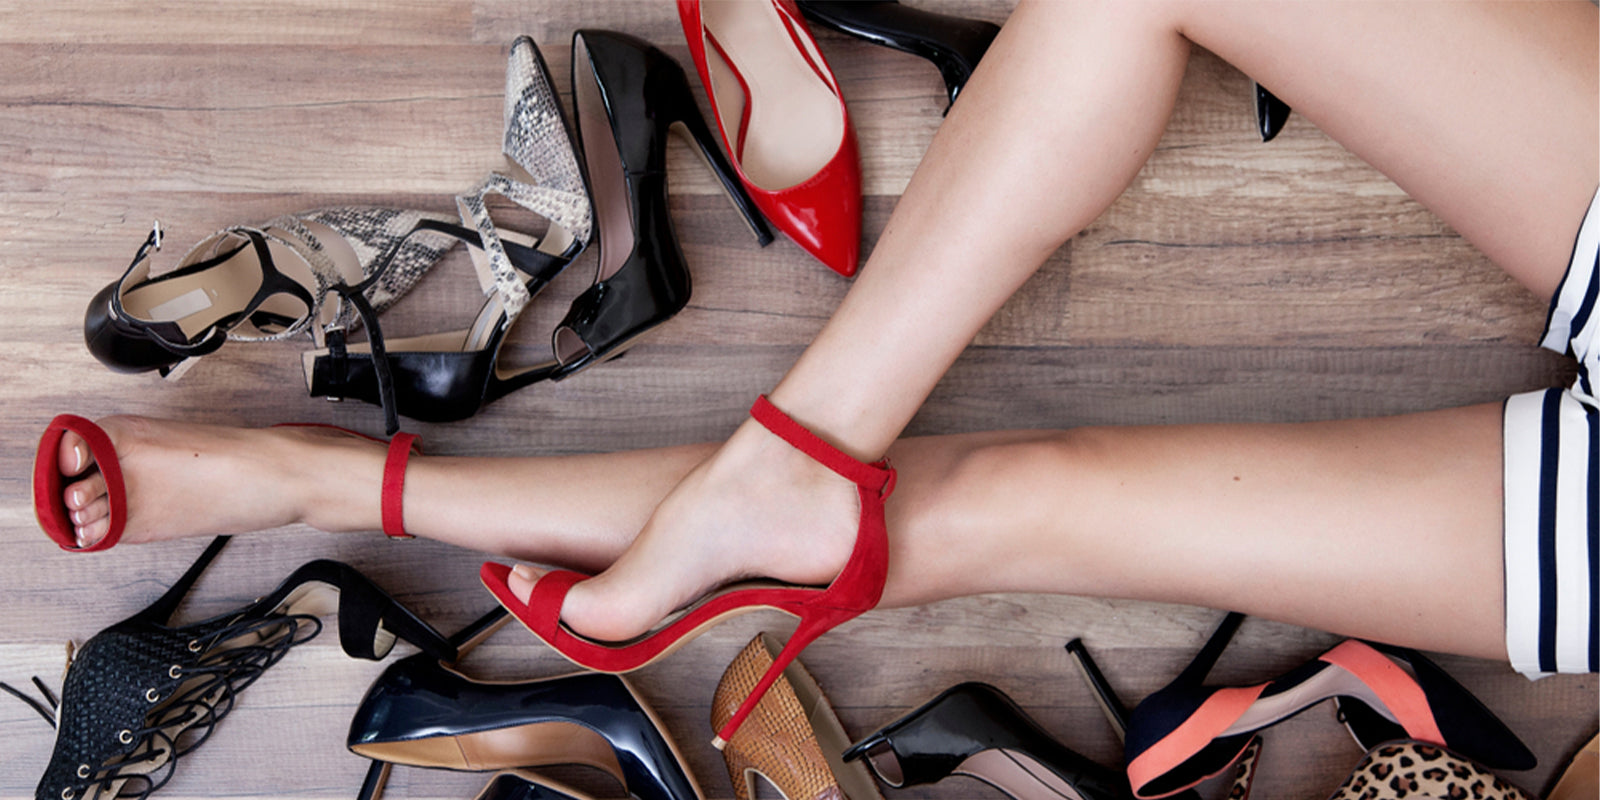 Woman with many shoes